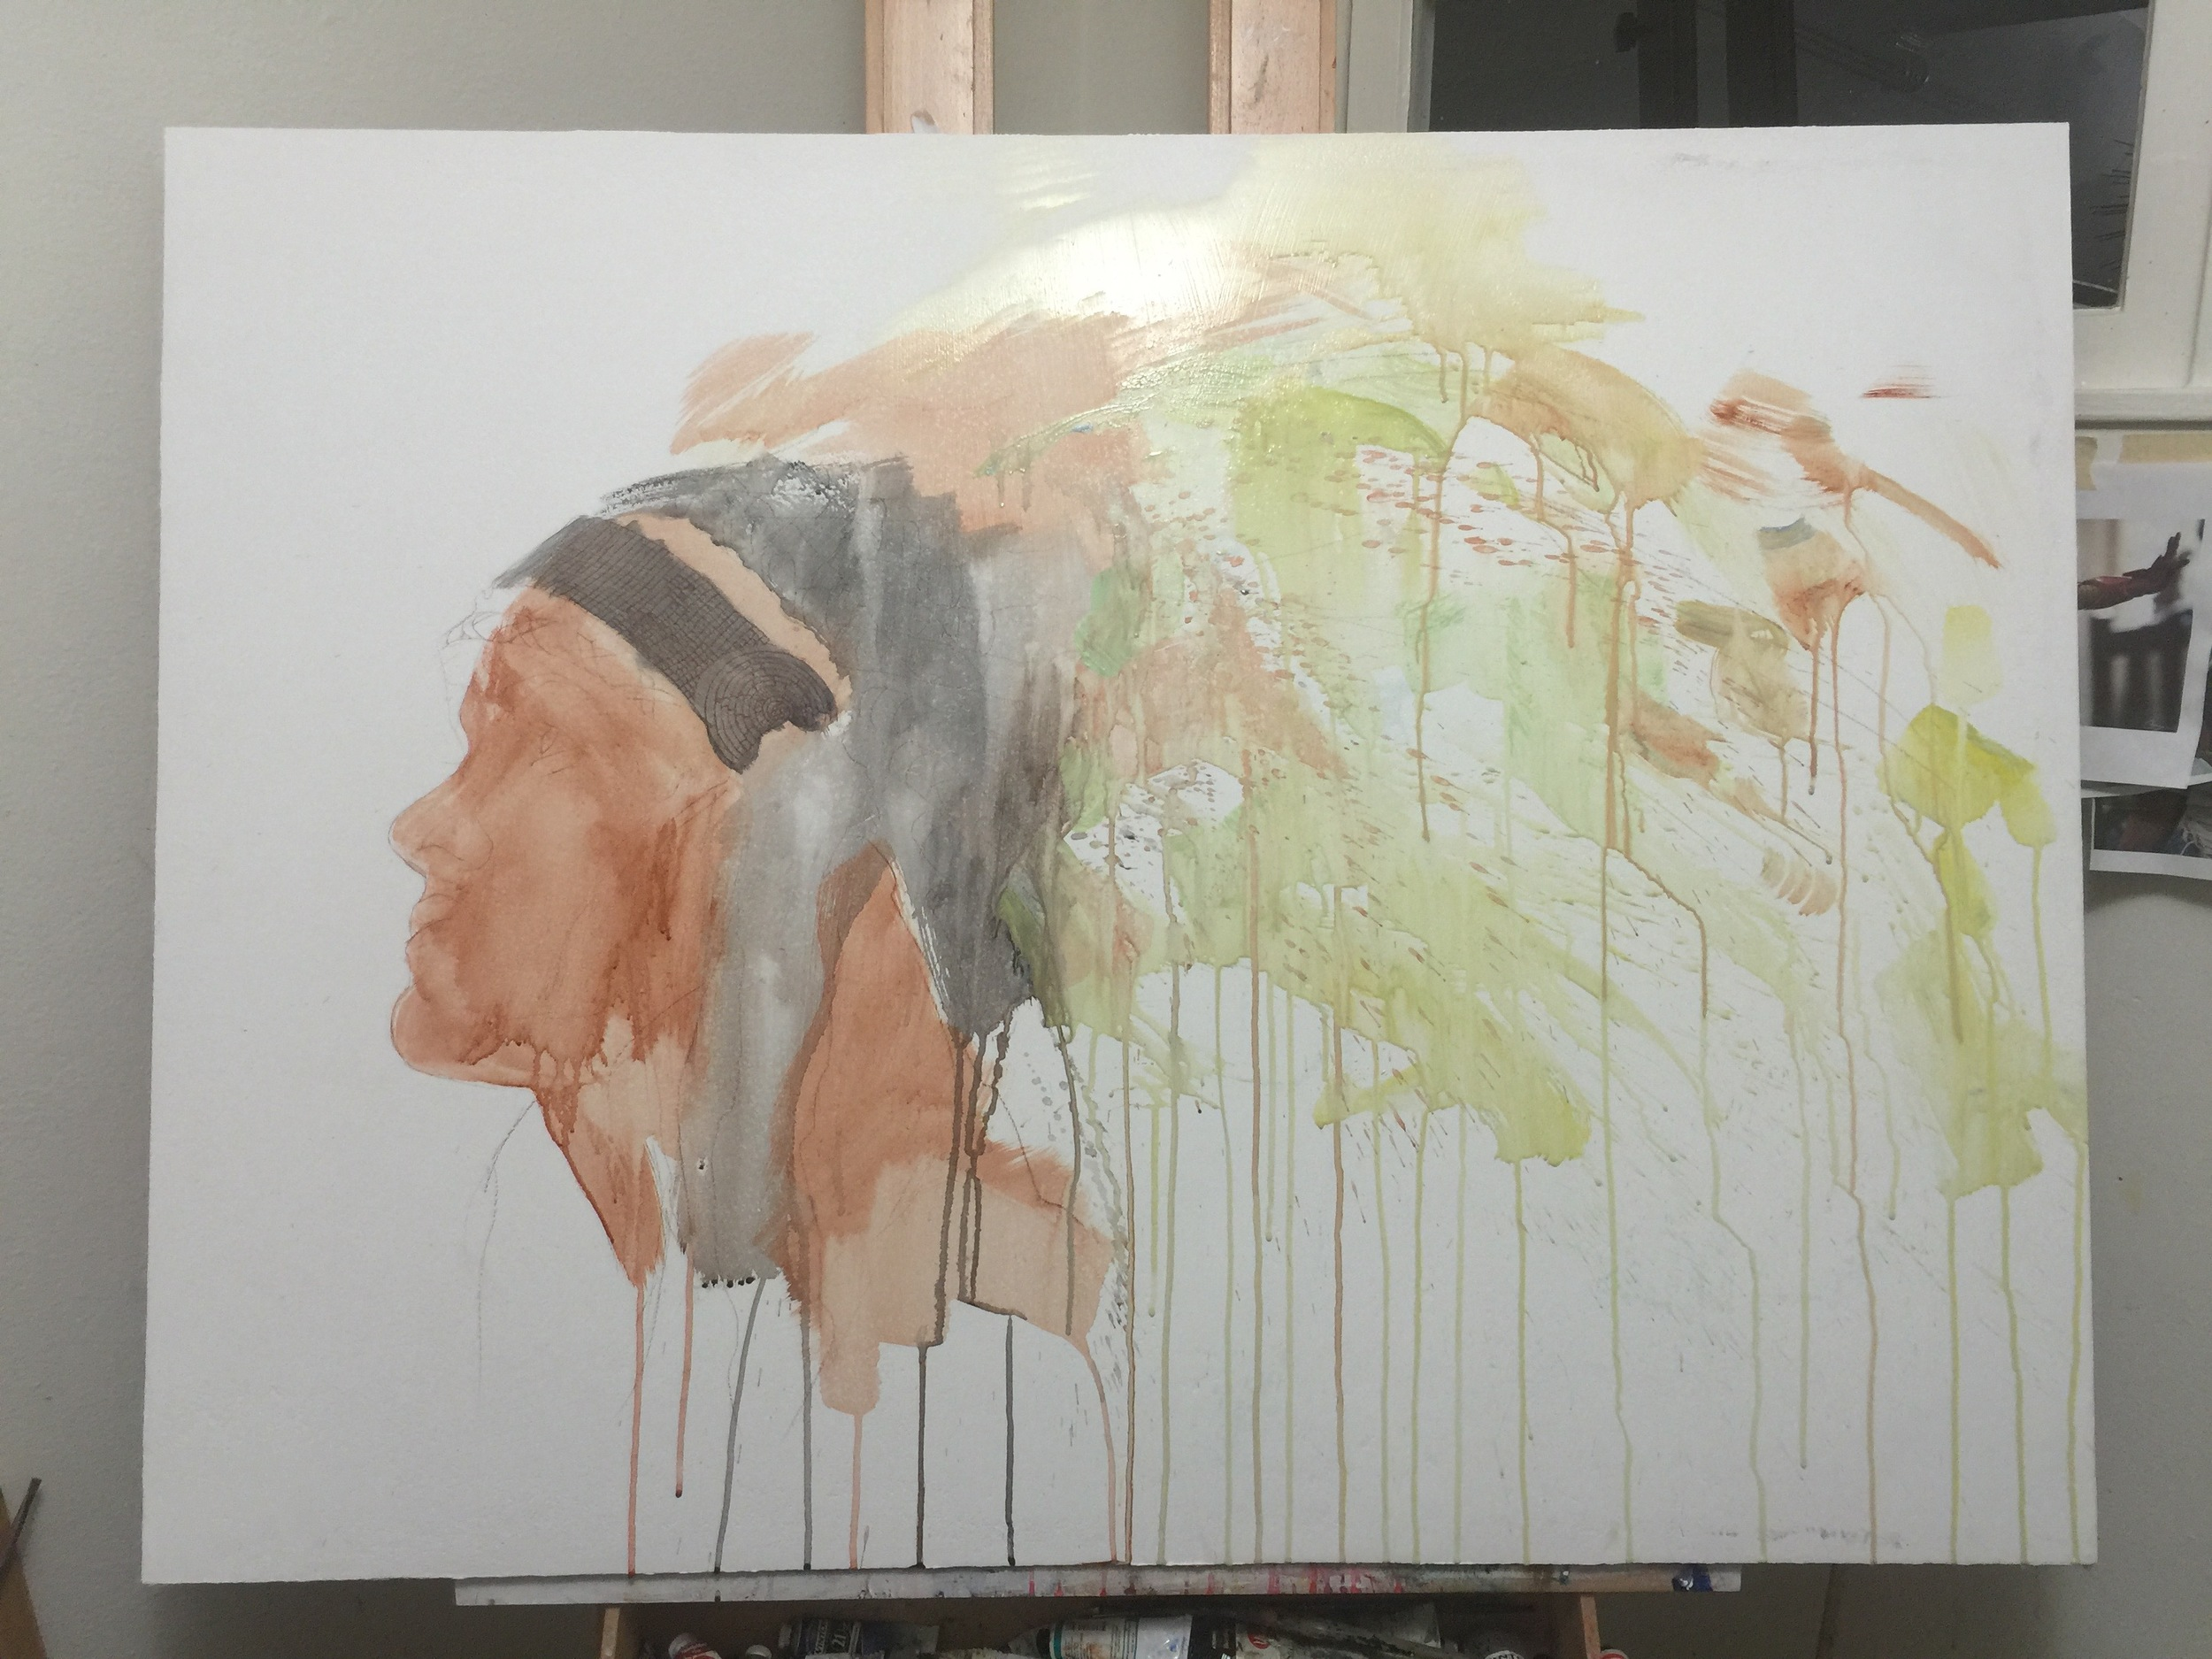 Underpainting, acrylic wash.